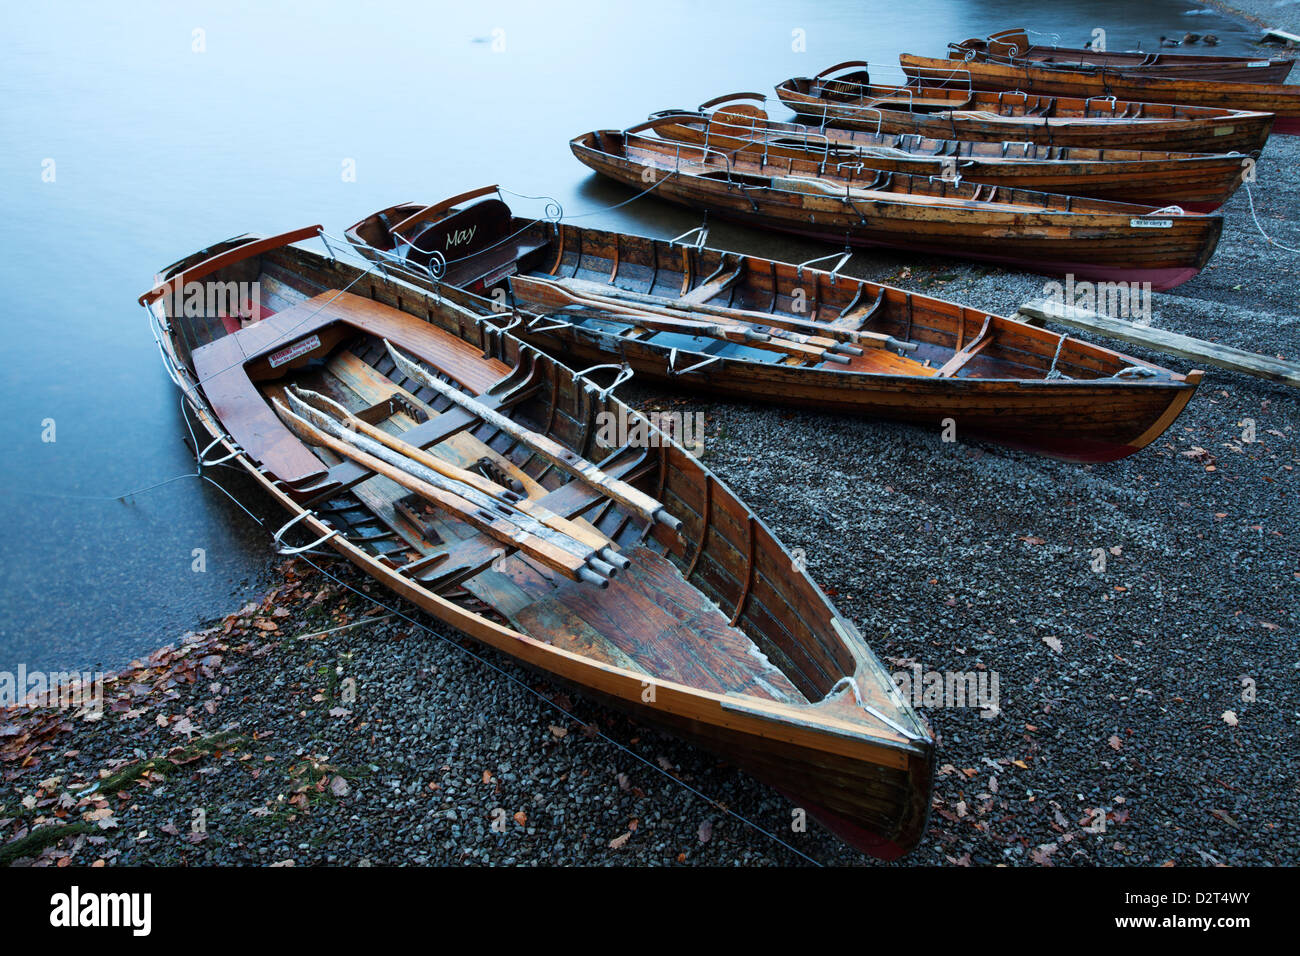 Rowing boats on the Lakeshore, Derwentwater, Keswick, Lake District National Park, Cumbria, England, United Kingdom, Stock Photo